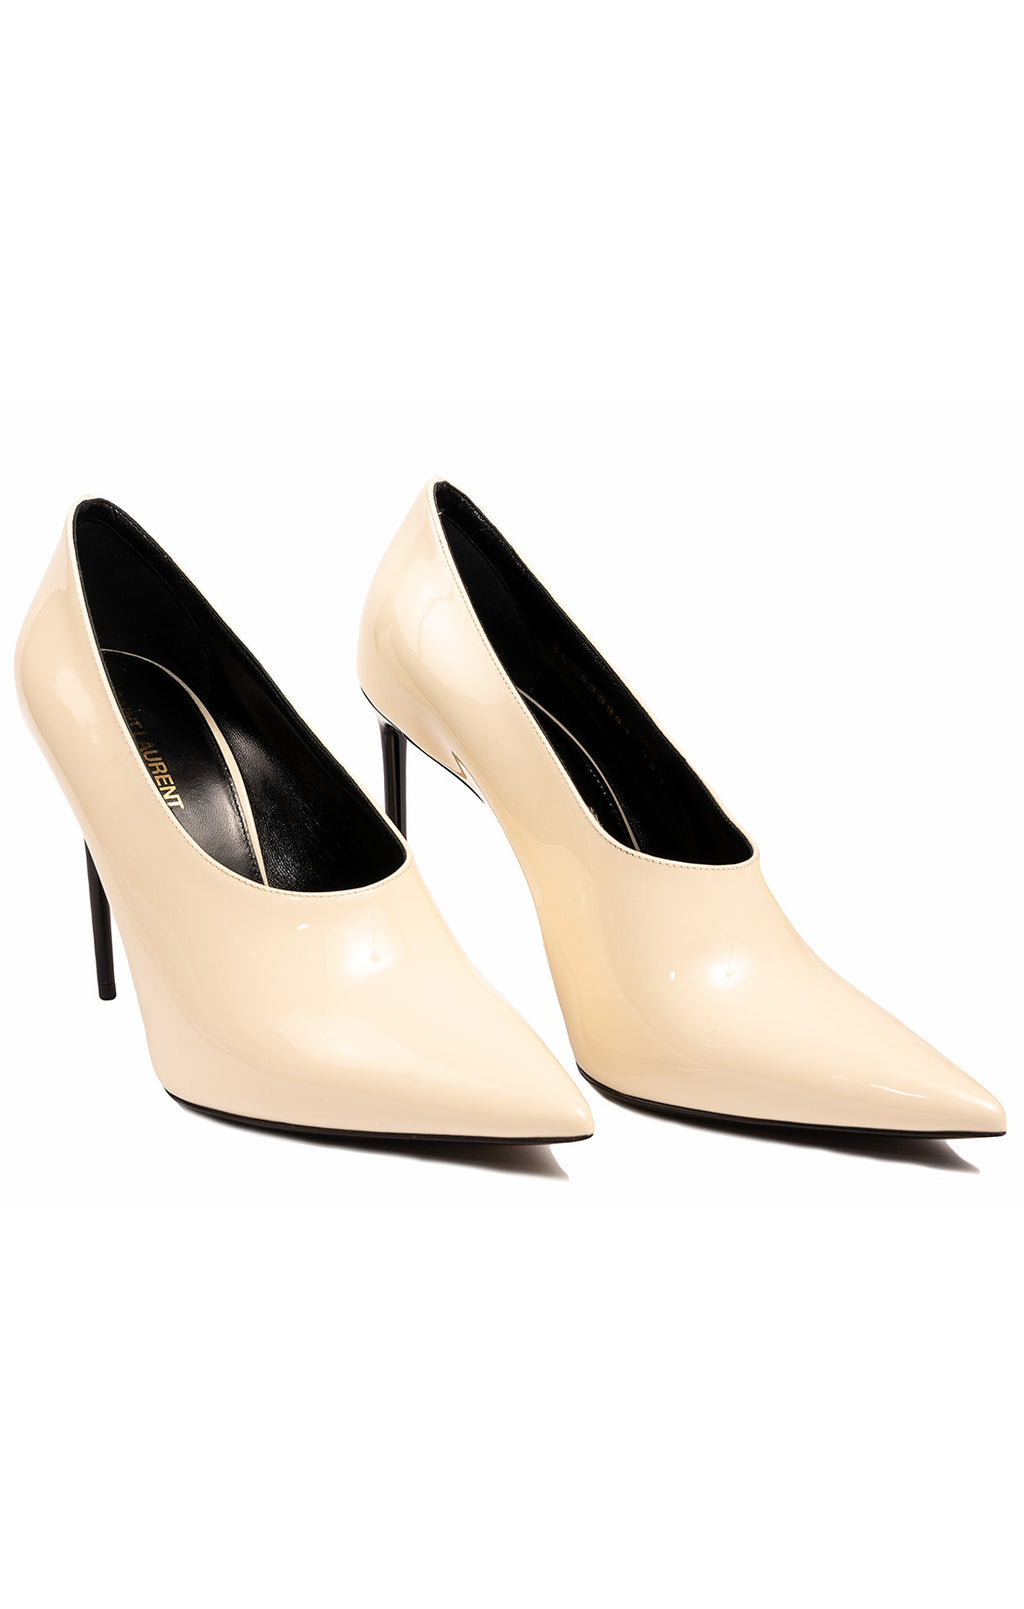 "Ivory pointed toe pump with 4.25"" black patent heel"